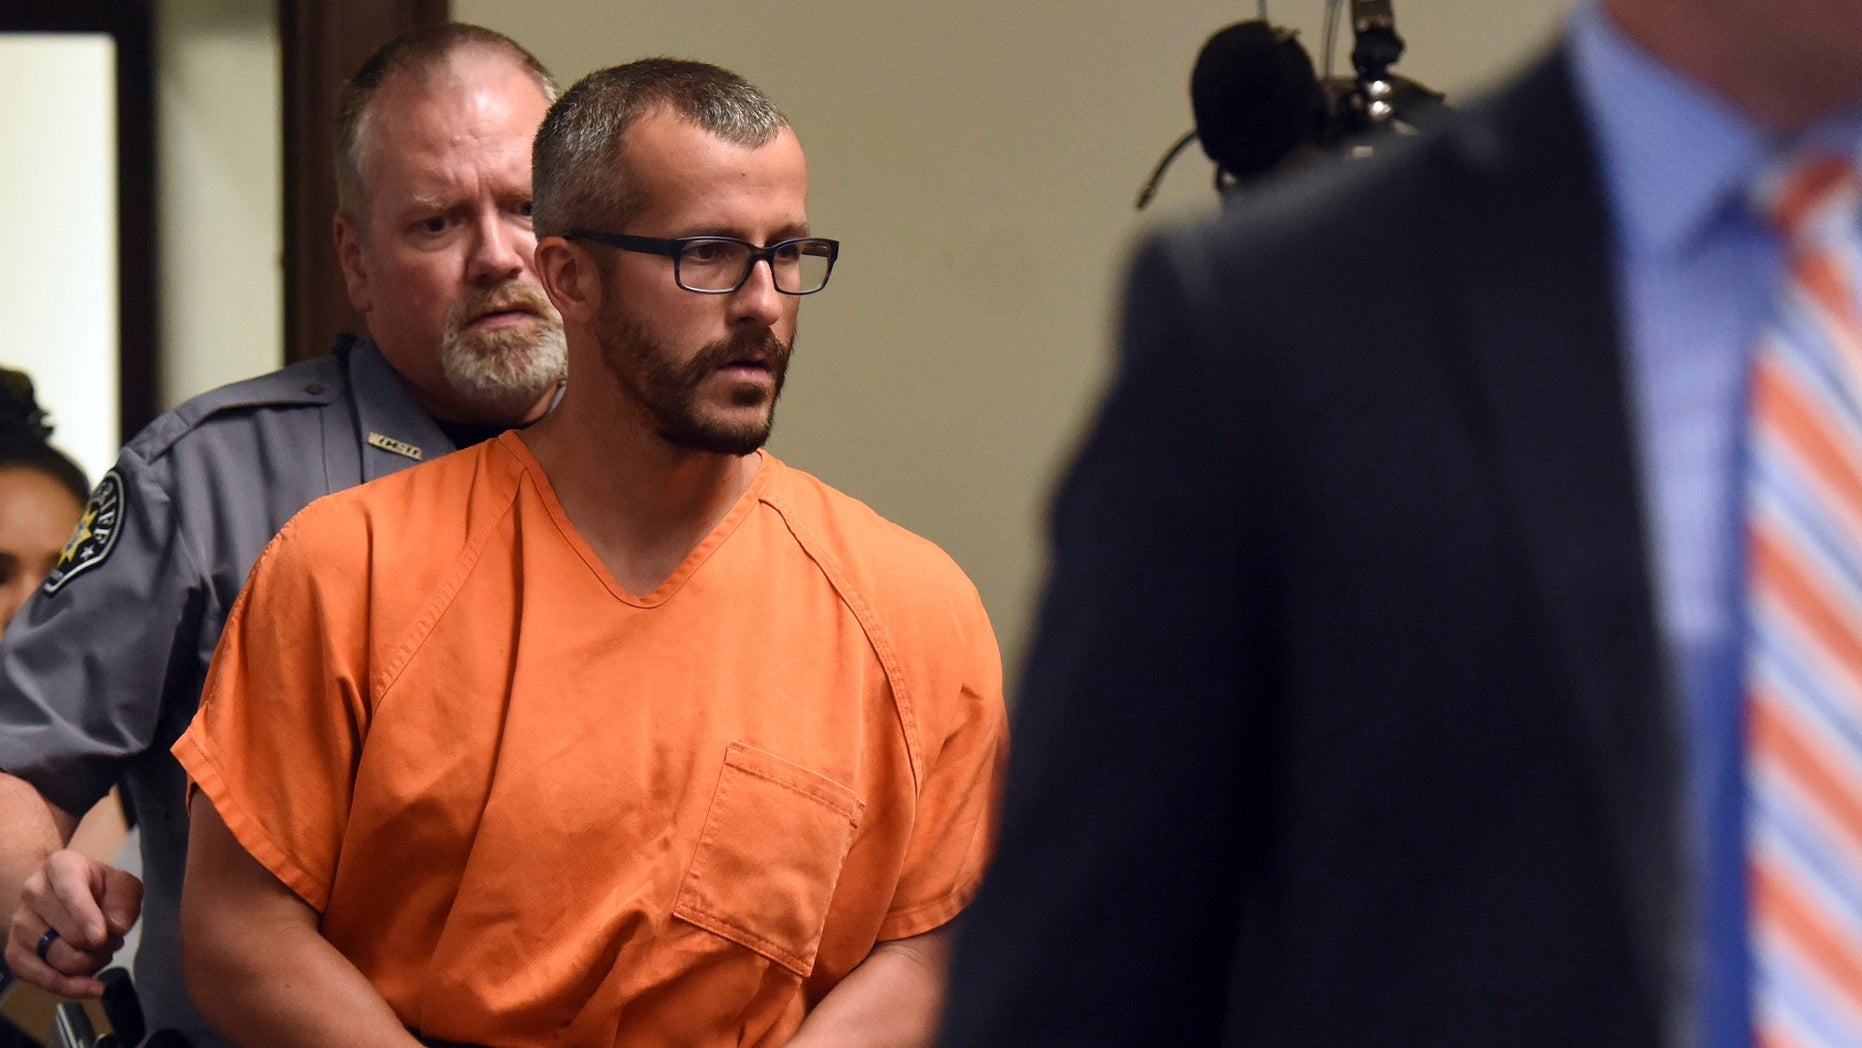 Chris Watts' mistress: 'He lied about everything'